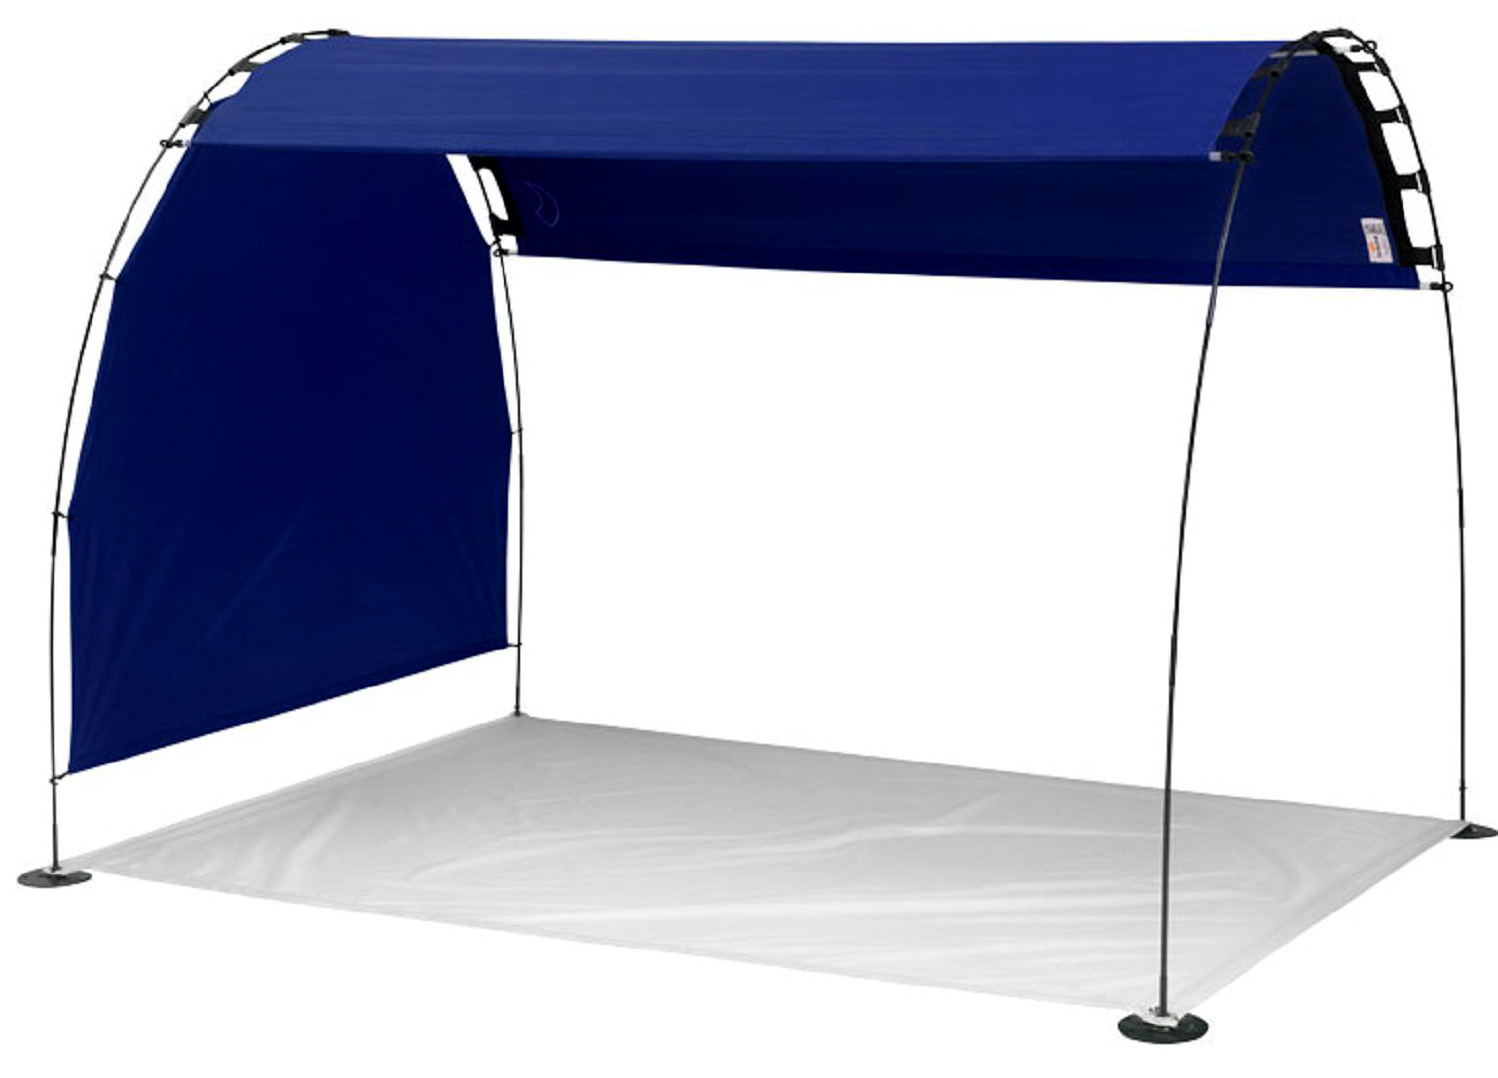 New Outdoor Cabana Shade Lightweight Navy Canopy UV Protection Solar Tent + Bag | eBay  sc 1 st  ArcticLove.org & Tent Canopy Walmart - Amazing Home Decors and Interior Design ...